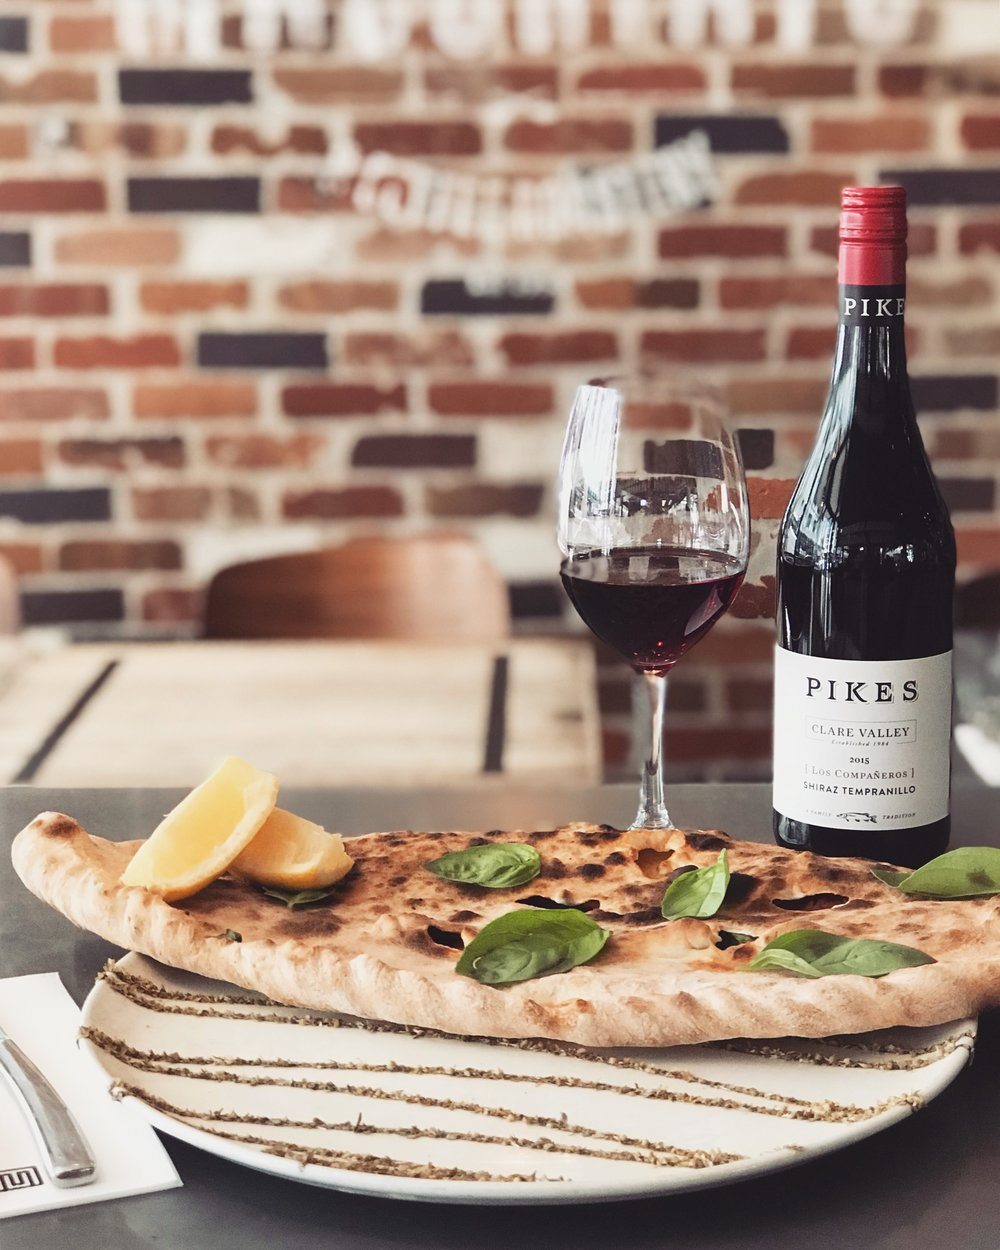 22-28 November - An Italian version of a Turkish favourite - the Great Gozleme. This huge wood fired calcone wraps up a cheesy heart of mozzarella, salame Calabrese and spinach. We dare you finish it ad still be hungry!Best served with a glass of Pikes 'Los Companeros' Shiraz-Tempranillo, 2015 Clare Valley.